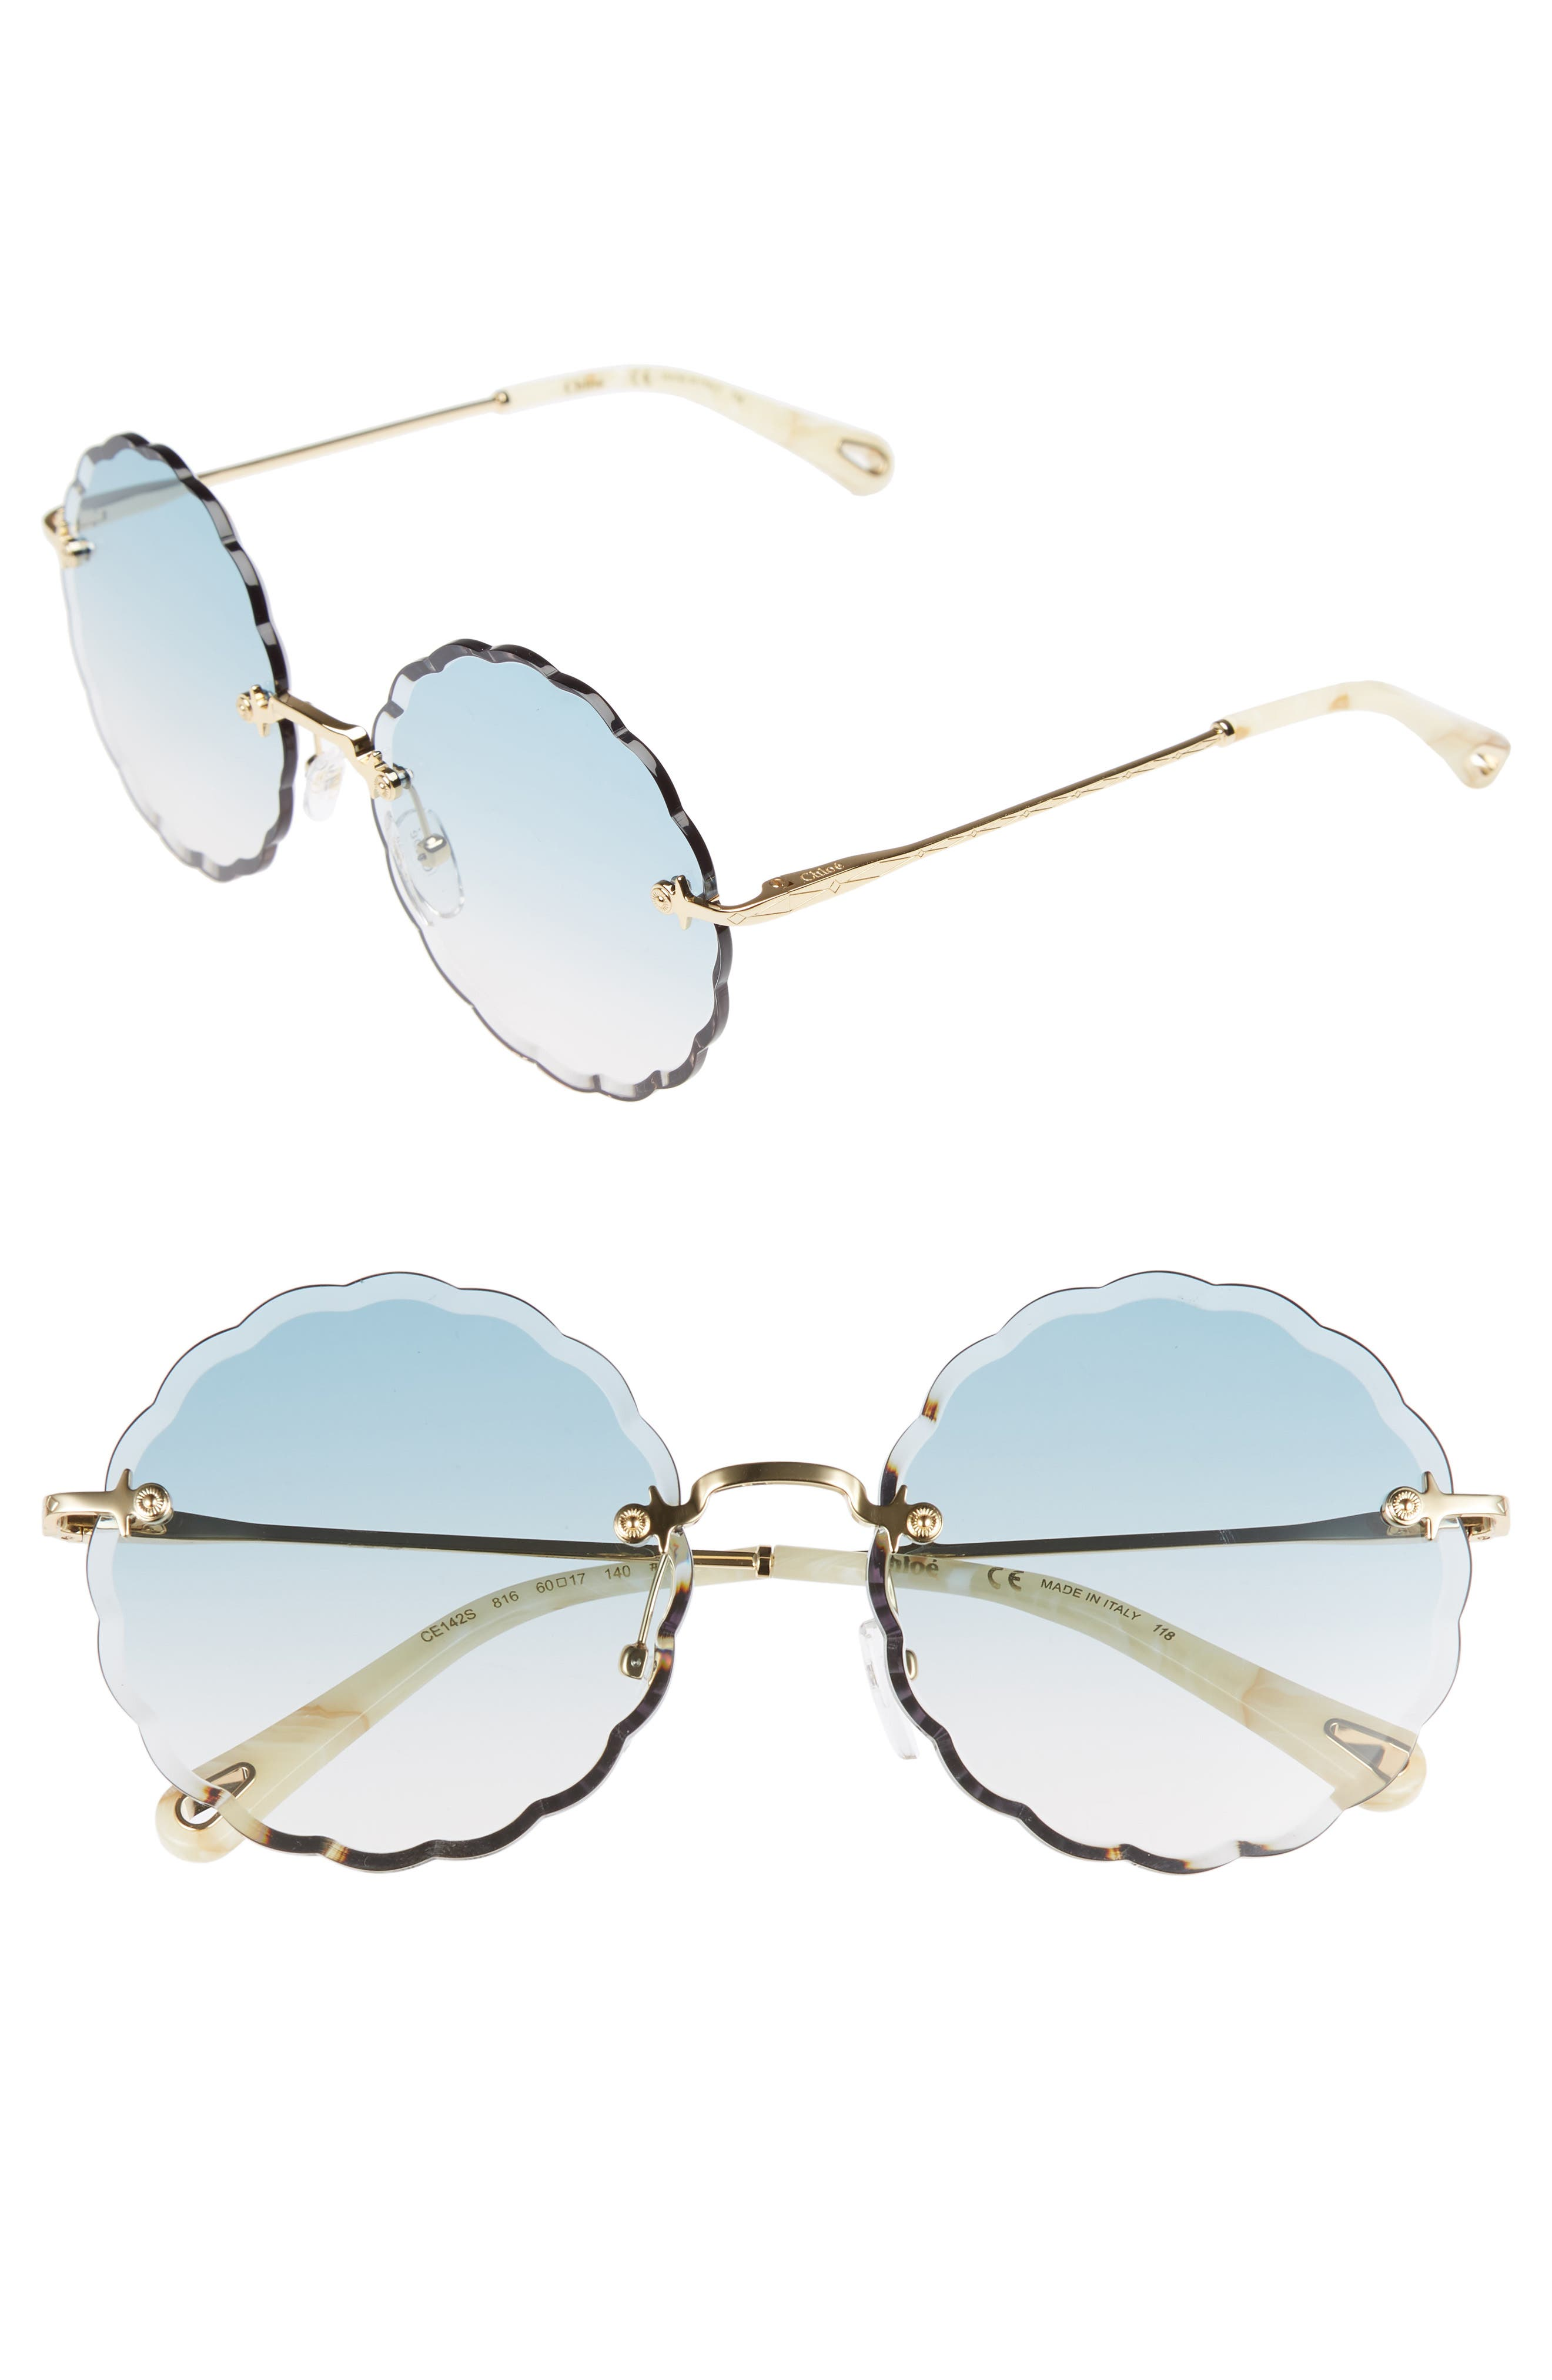 Rosie 60mm Scalloped Rimless Sunglasses,                             Main thumbnail 1, color,                             GOLD/ GRADIENT BLUE